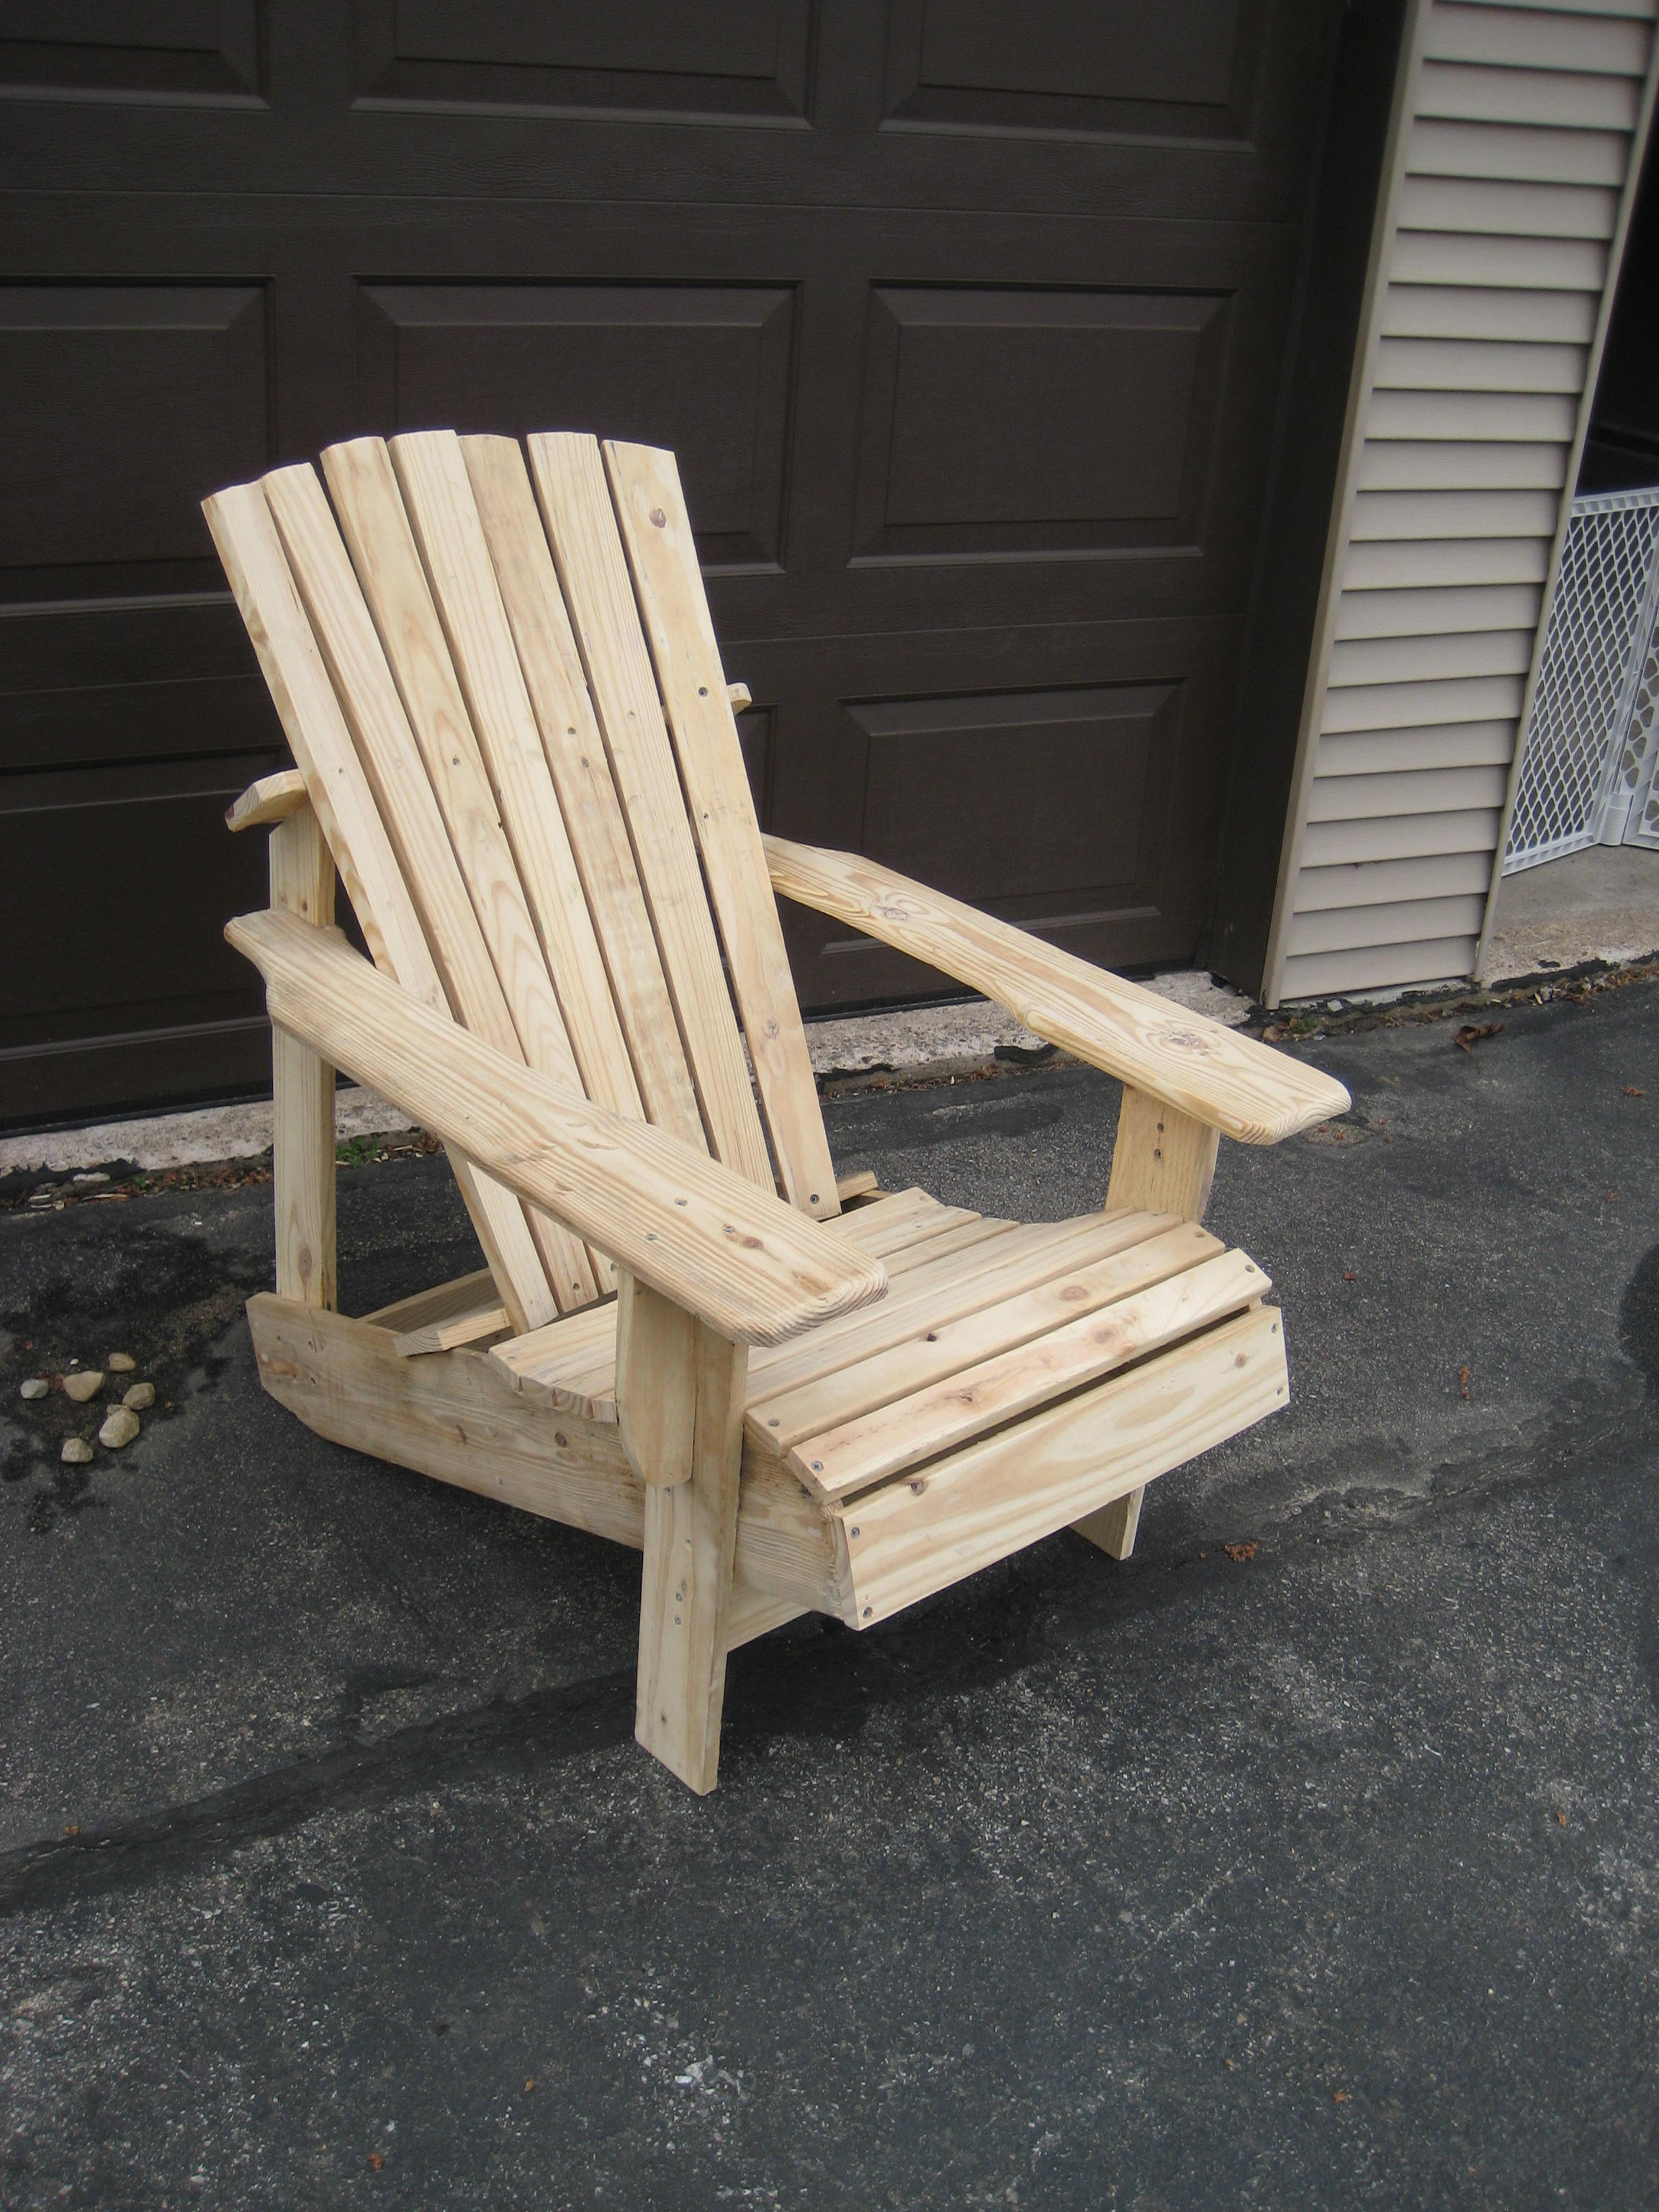 Pallet Adirondack Chair : 7 Steps (with Pictures) - Instructables